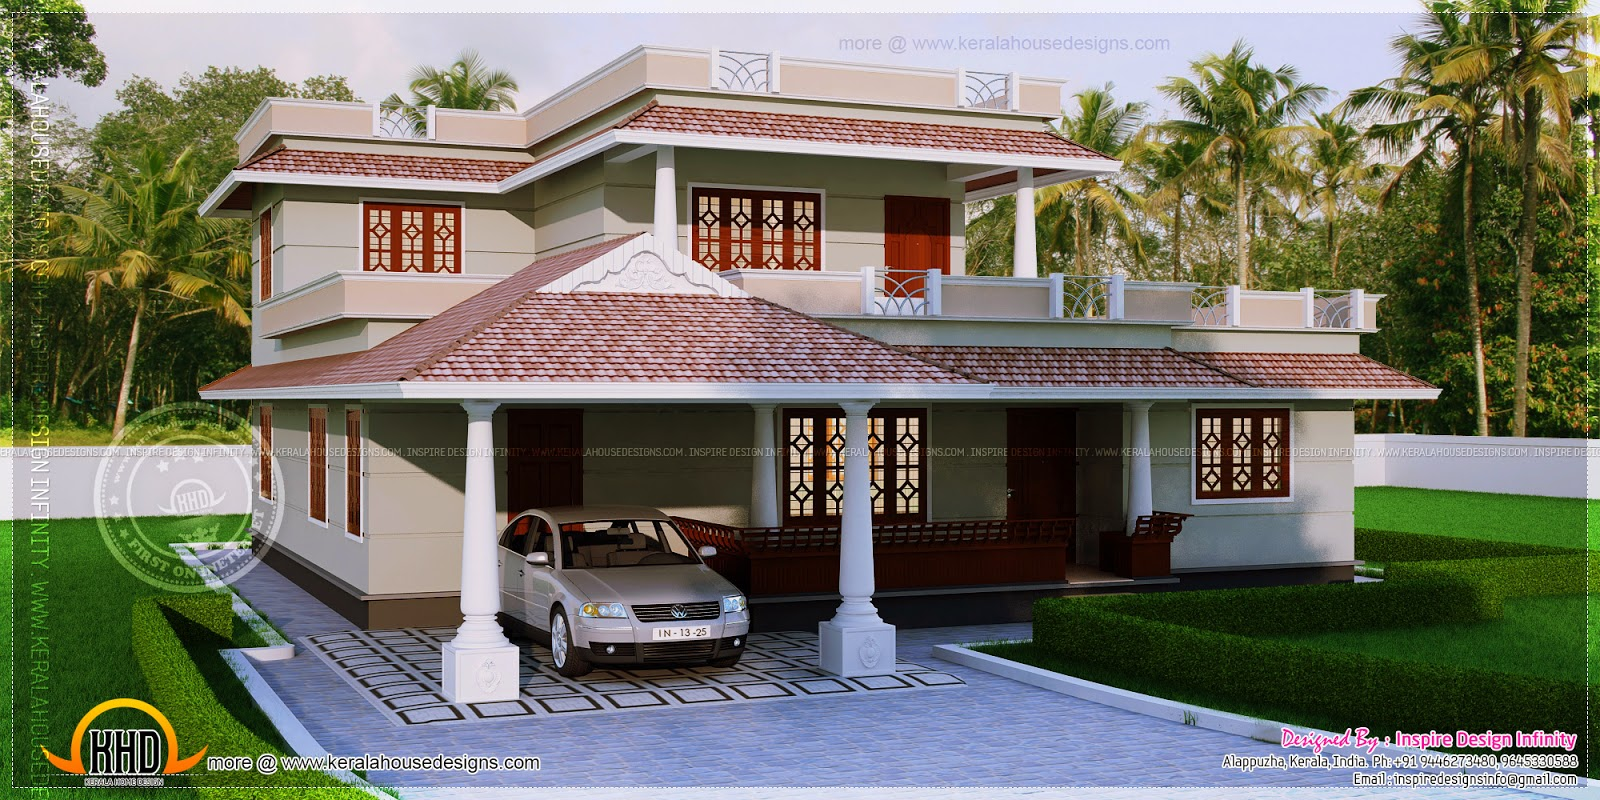 4 bedroom kerala style house in 300 square yards kerala for Home plans designs kerala